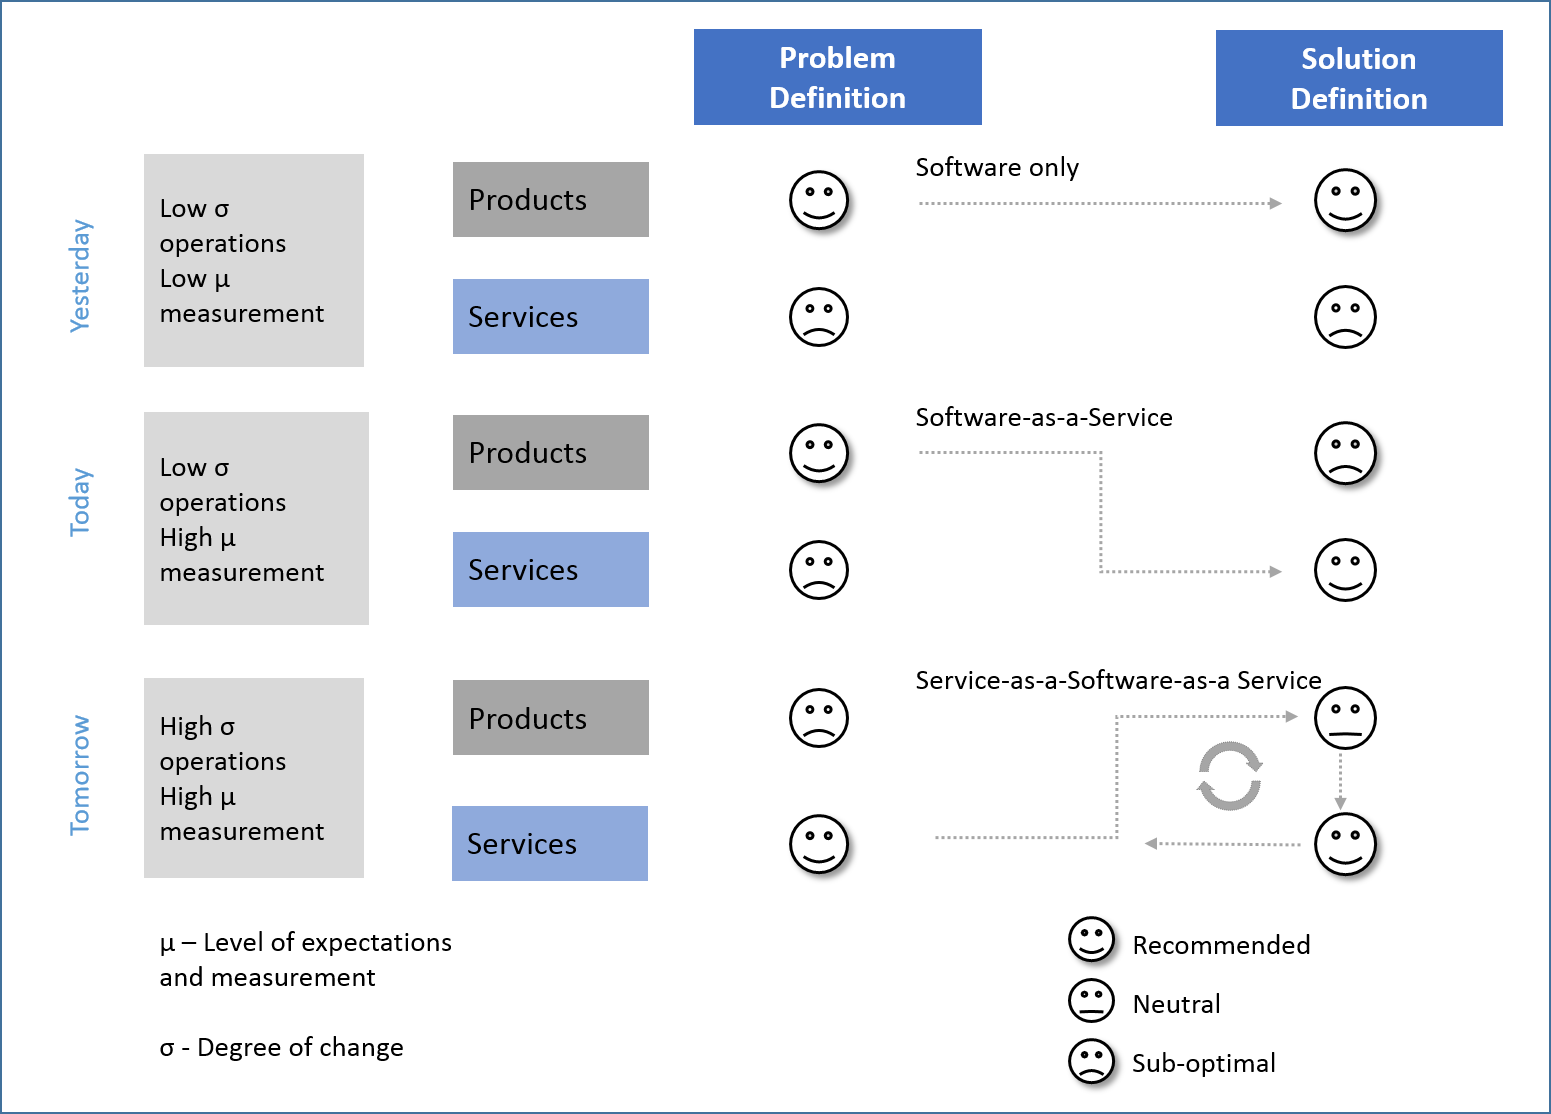 Approach to solutions in decision support